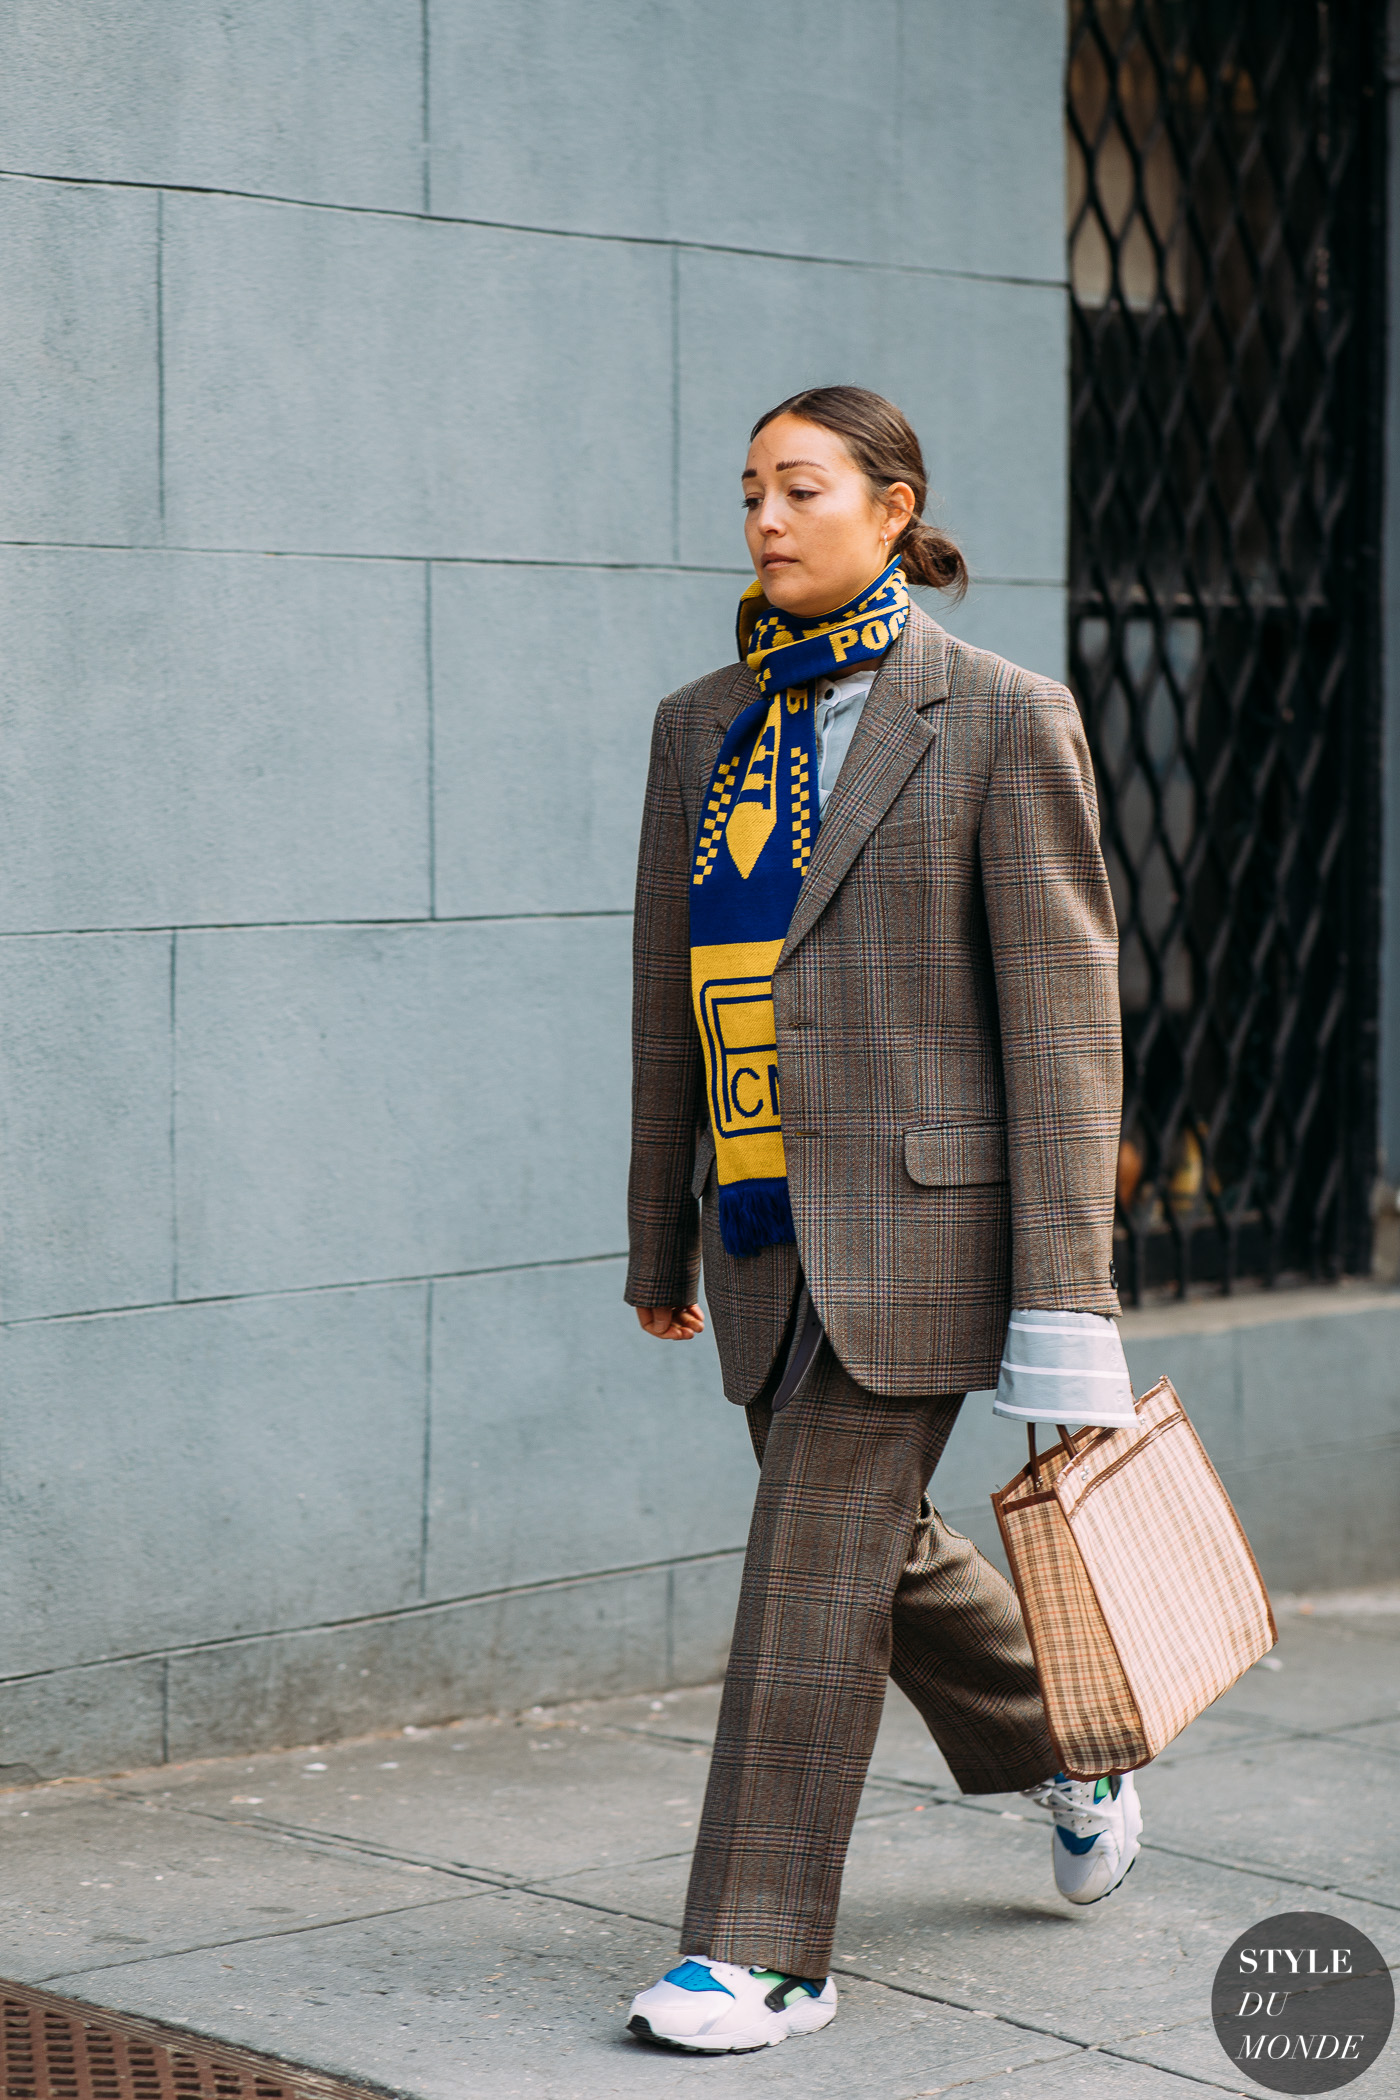 Rachael Wang by STYLEDUMONDE Street Style Fashion Photography NY FW18 20180209_48A2404